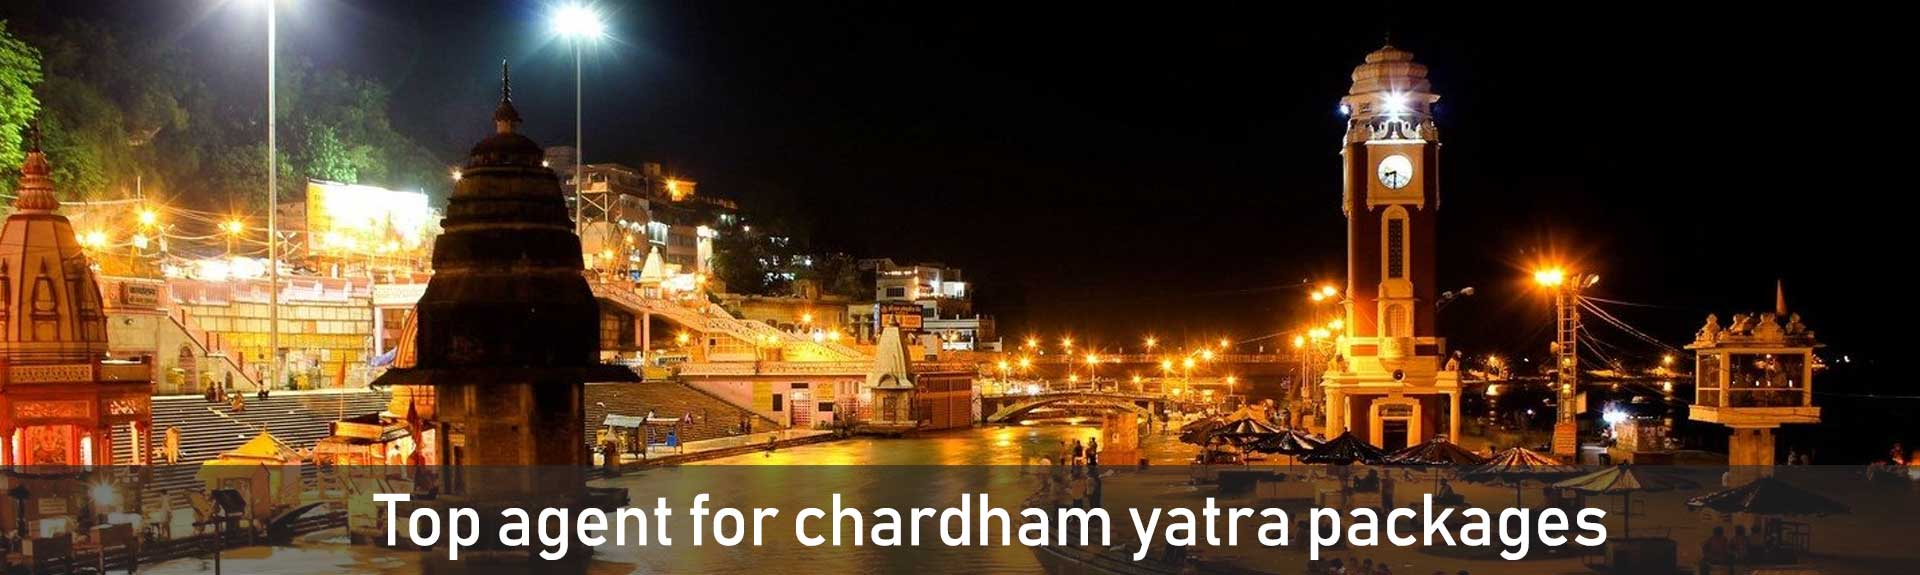 Top agent for chardham yatra packages